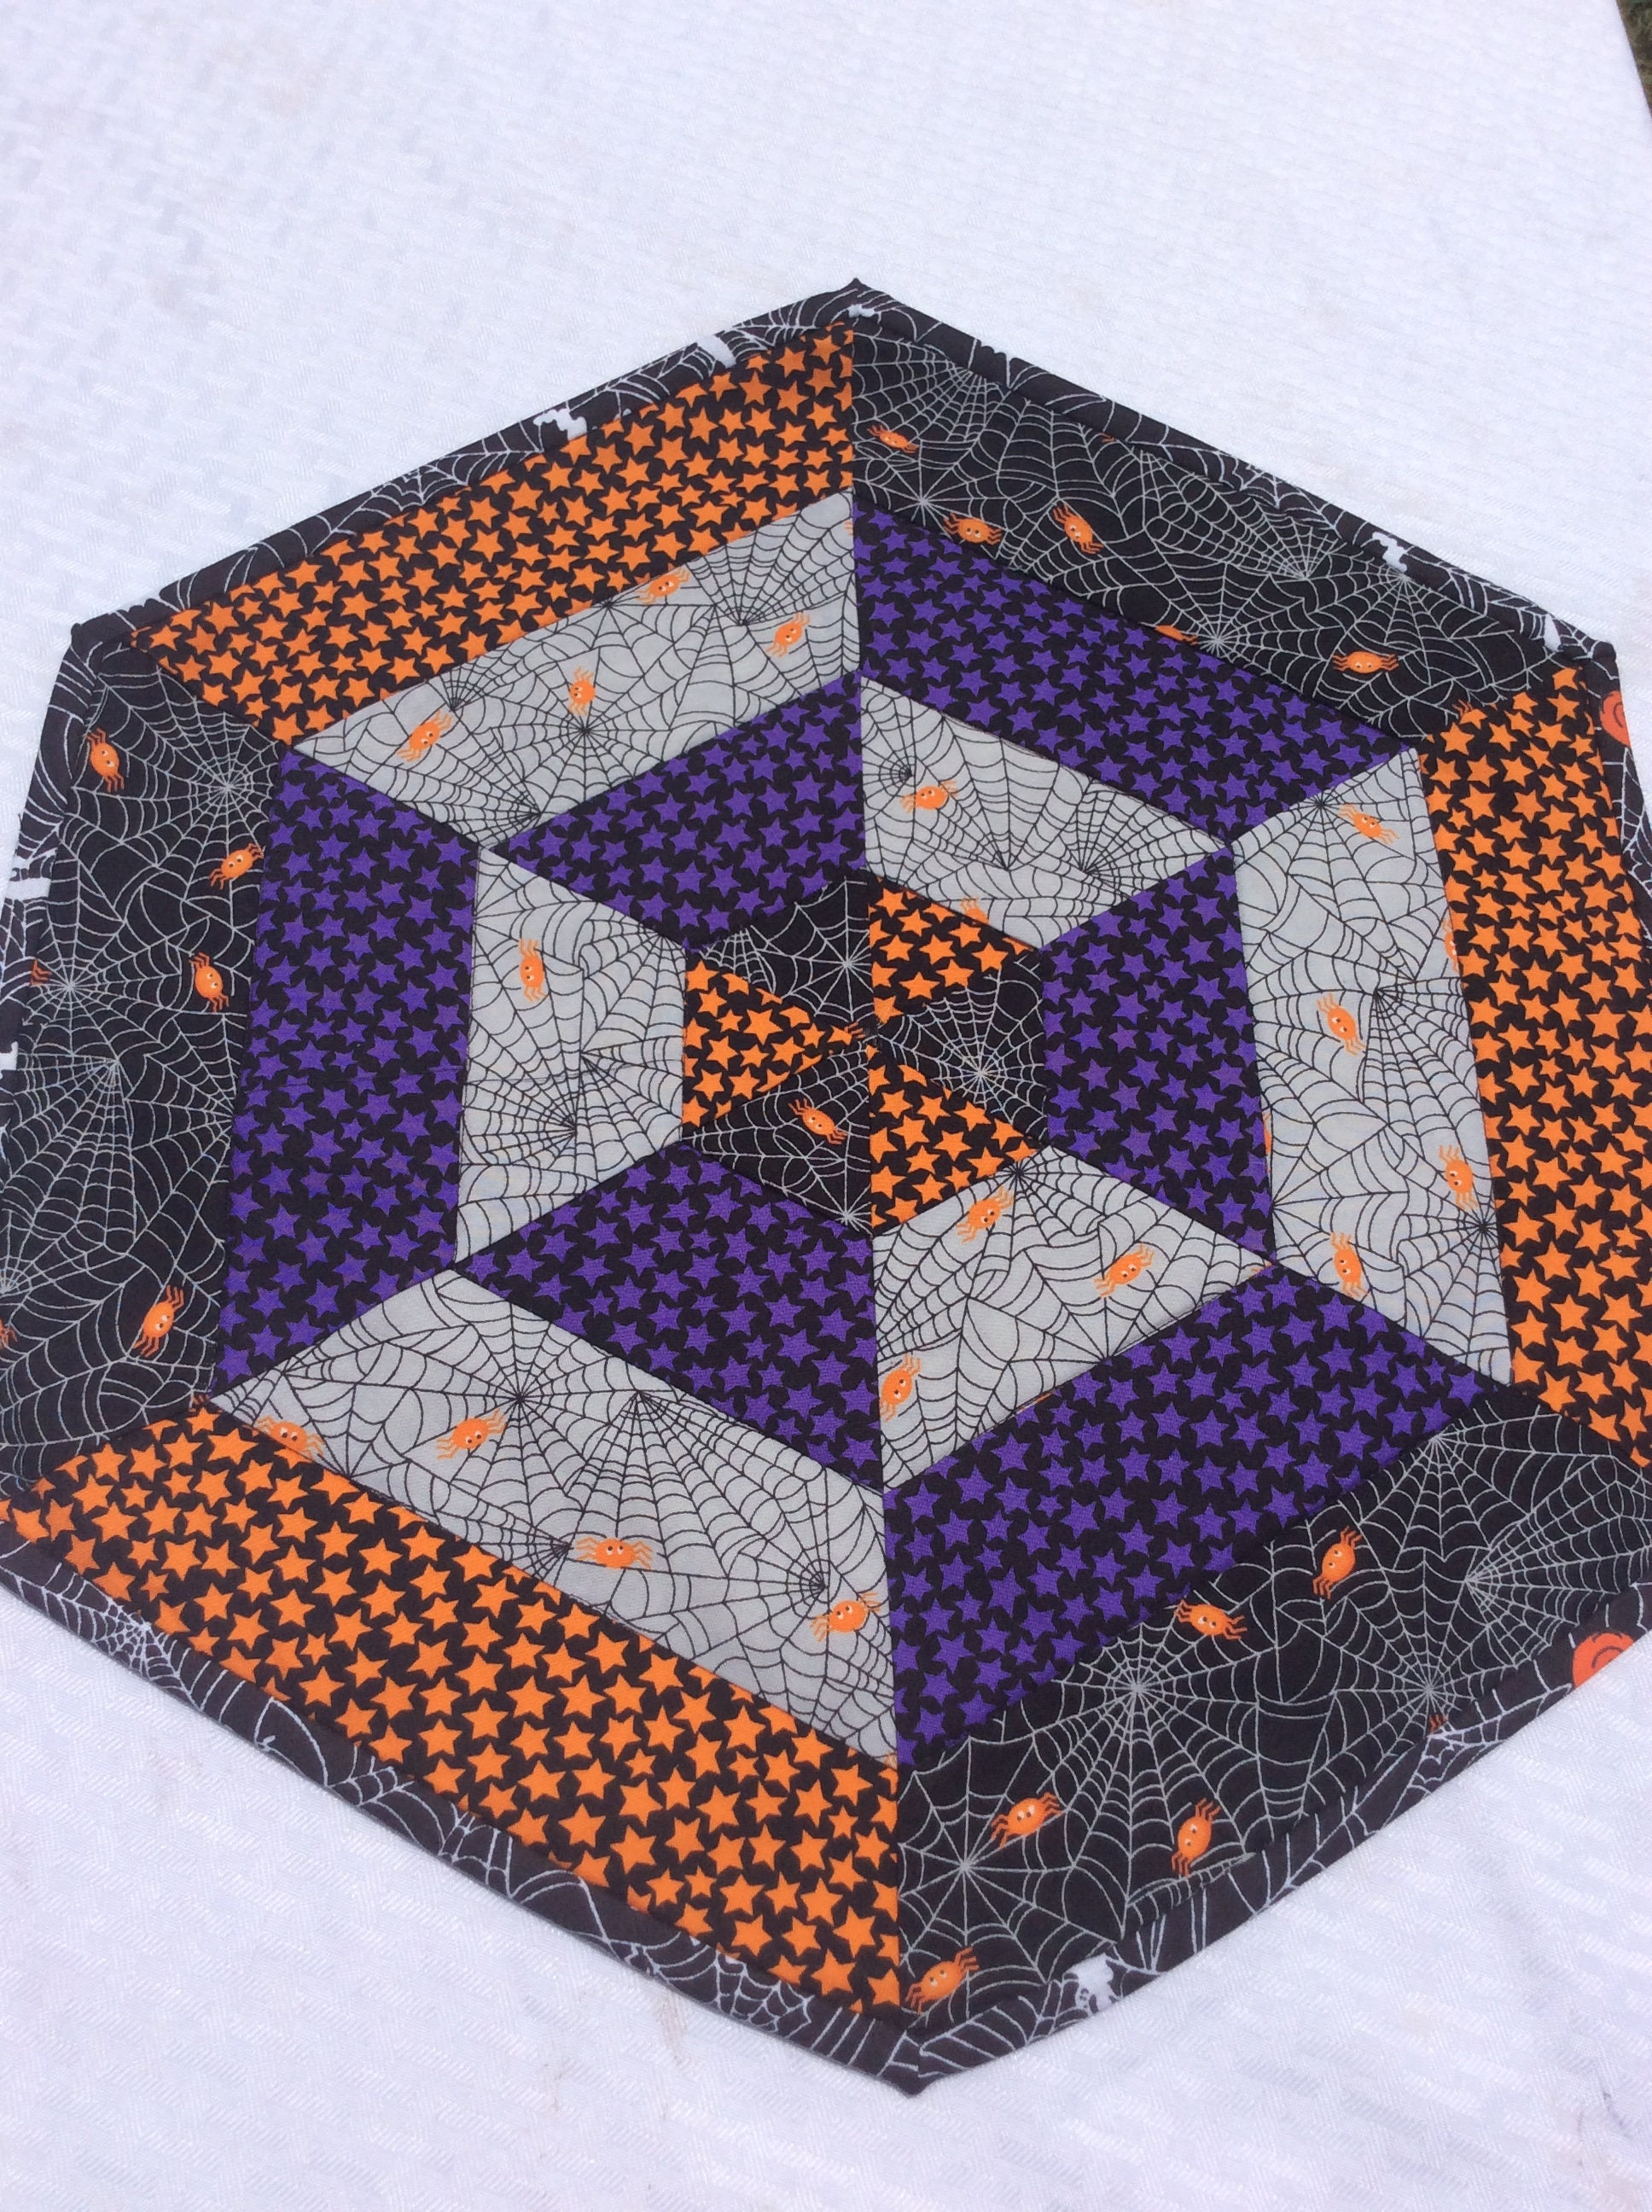 Halloween spider web mat quilted centerpiece table topper